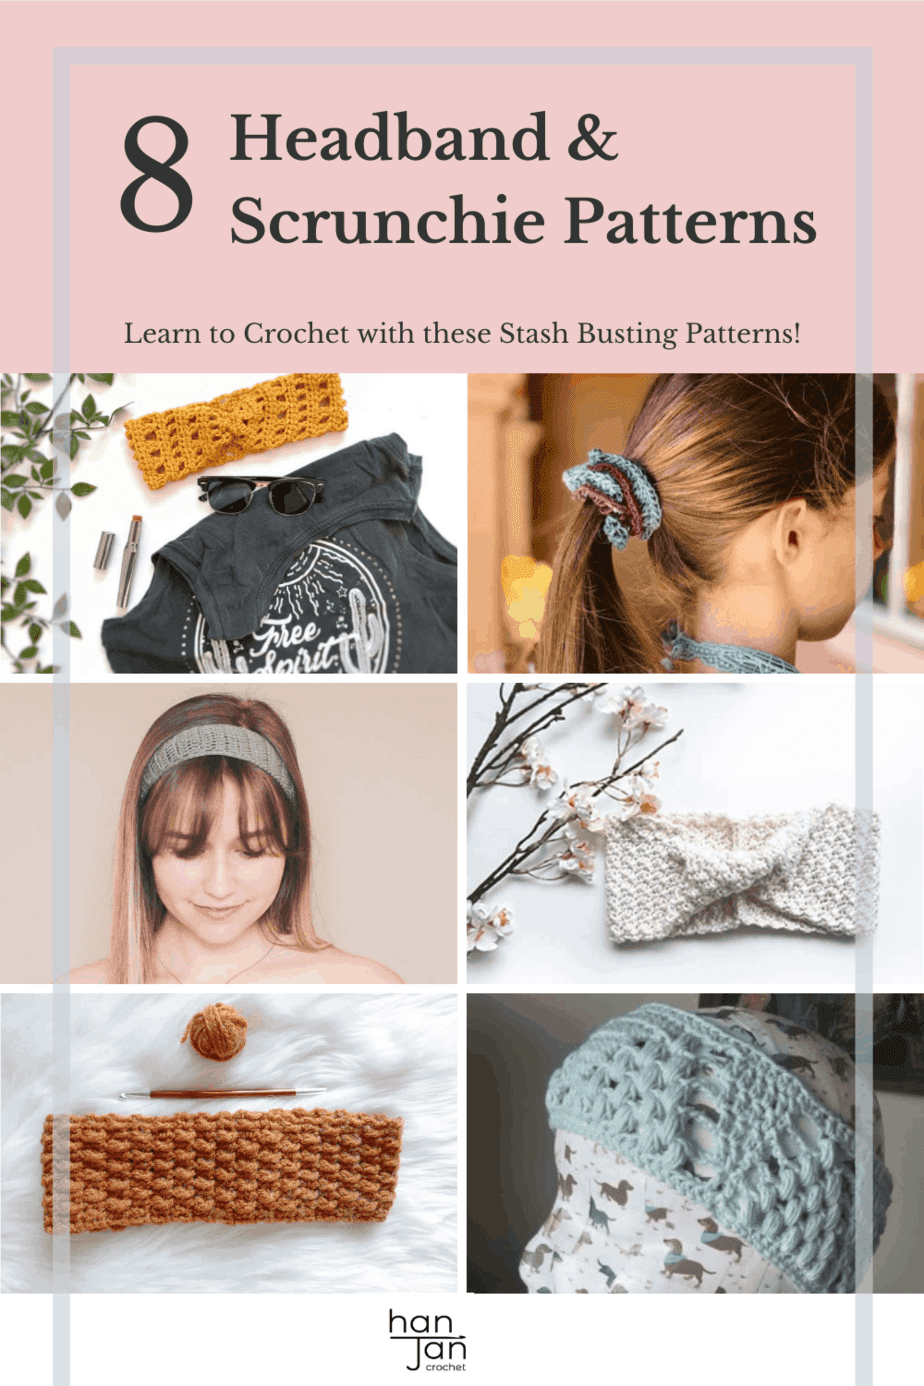 8 quick crochet headband and scrunchie patterns shown in a grid.